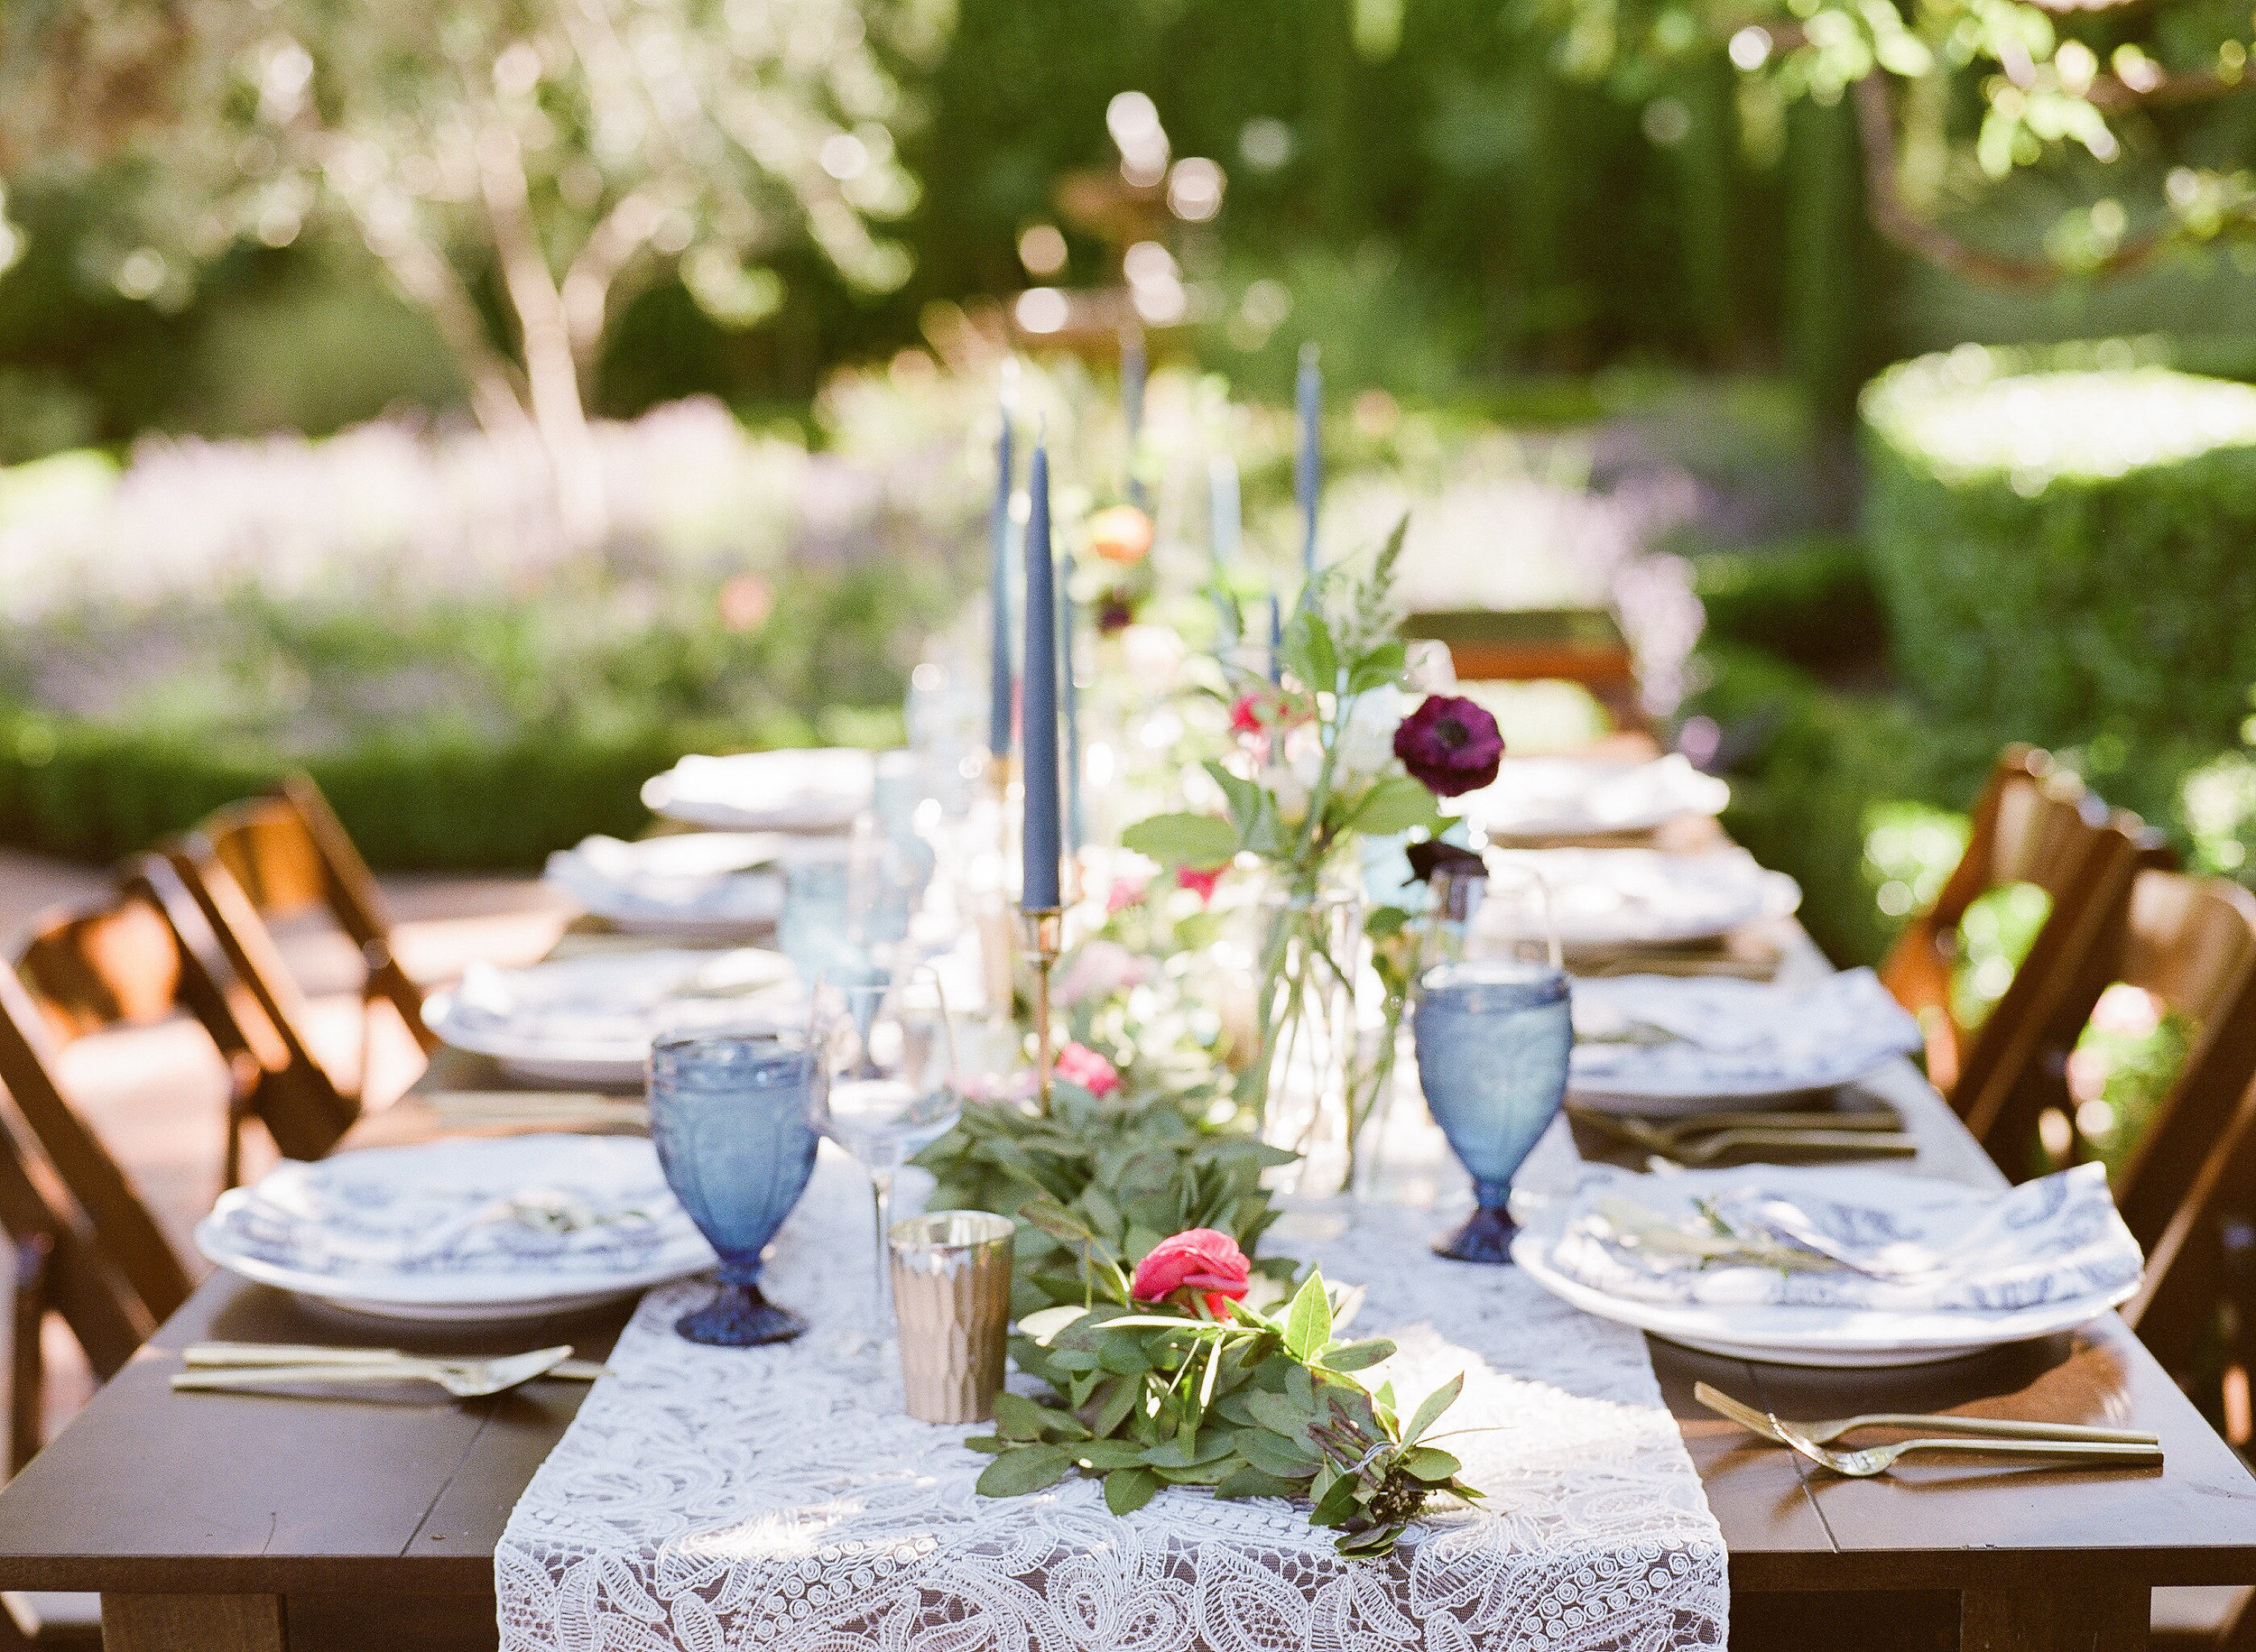 San Francisco Wedding Planning and Catering - Fraiche Catering.JPG